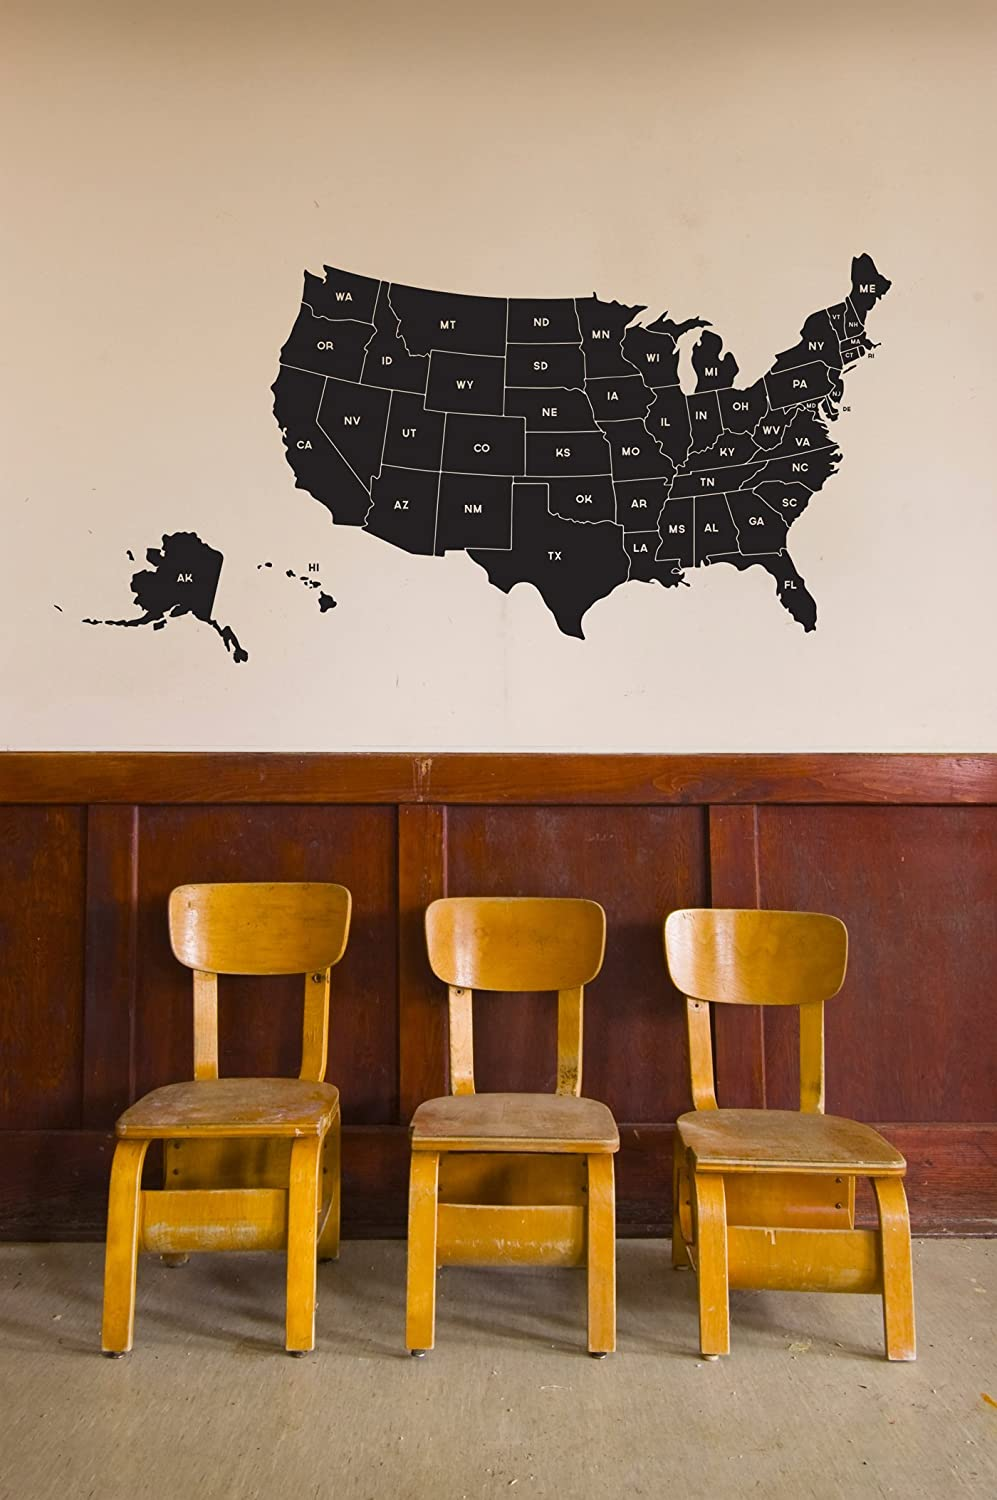 amazon com us state map black large vinyl wall art decal for homes offices kids rooms nurseries schools high schools colleges